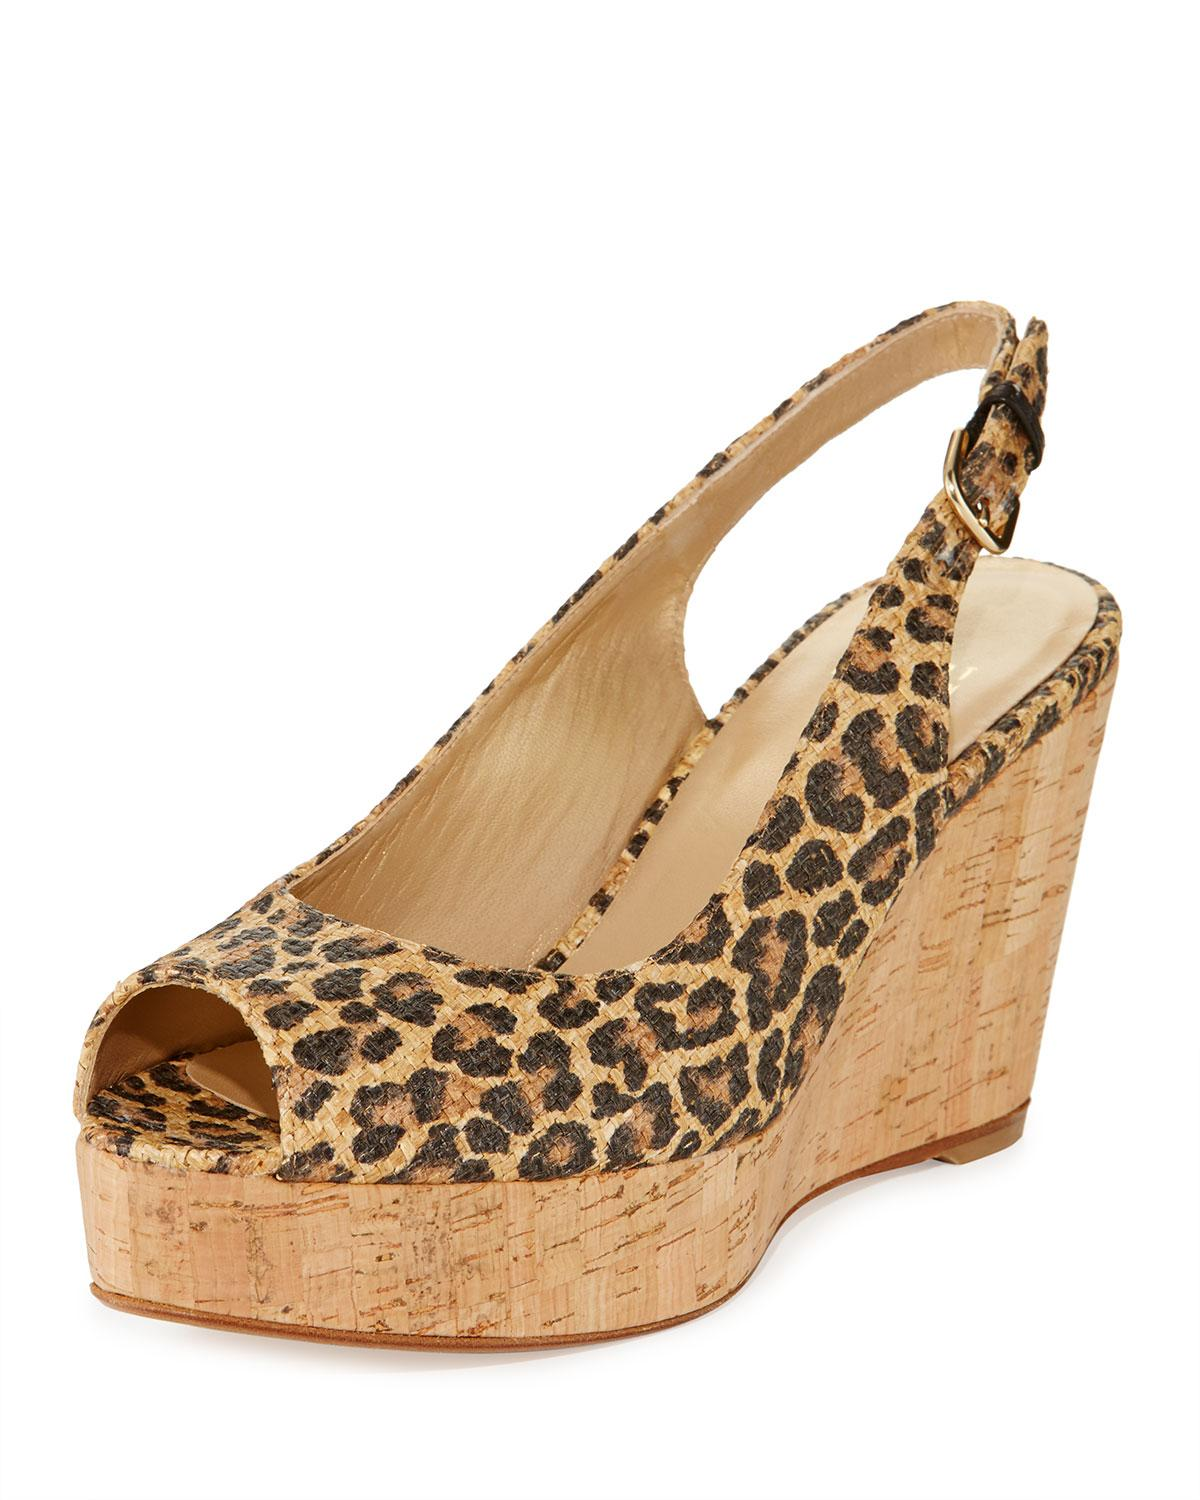 Find great deals on eBay for leopard print wedges. Shop with confidence.